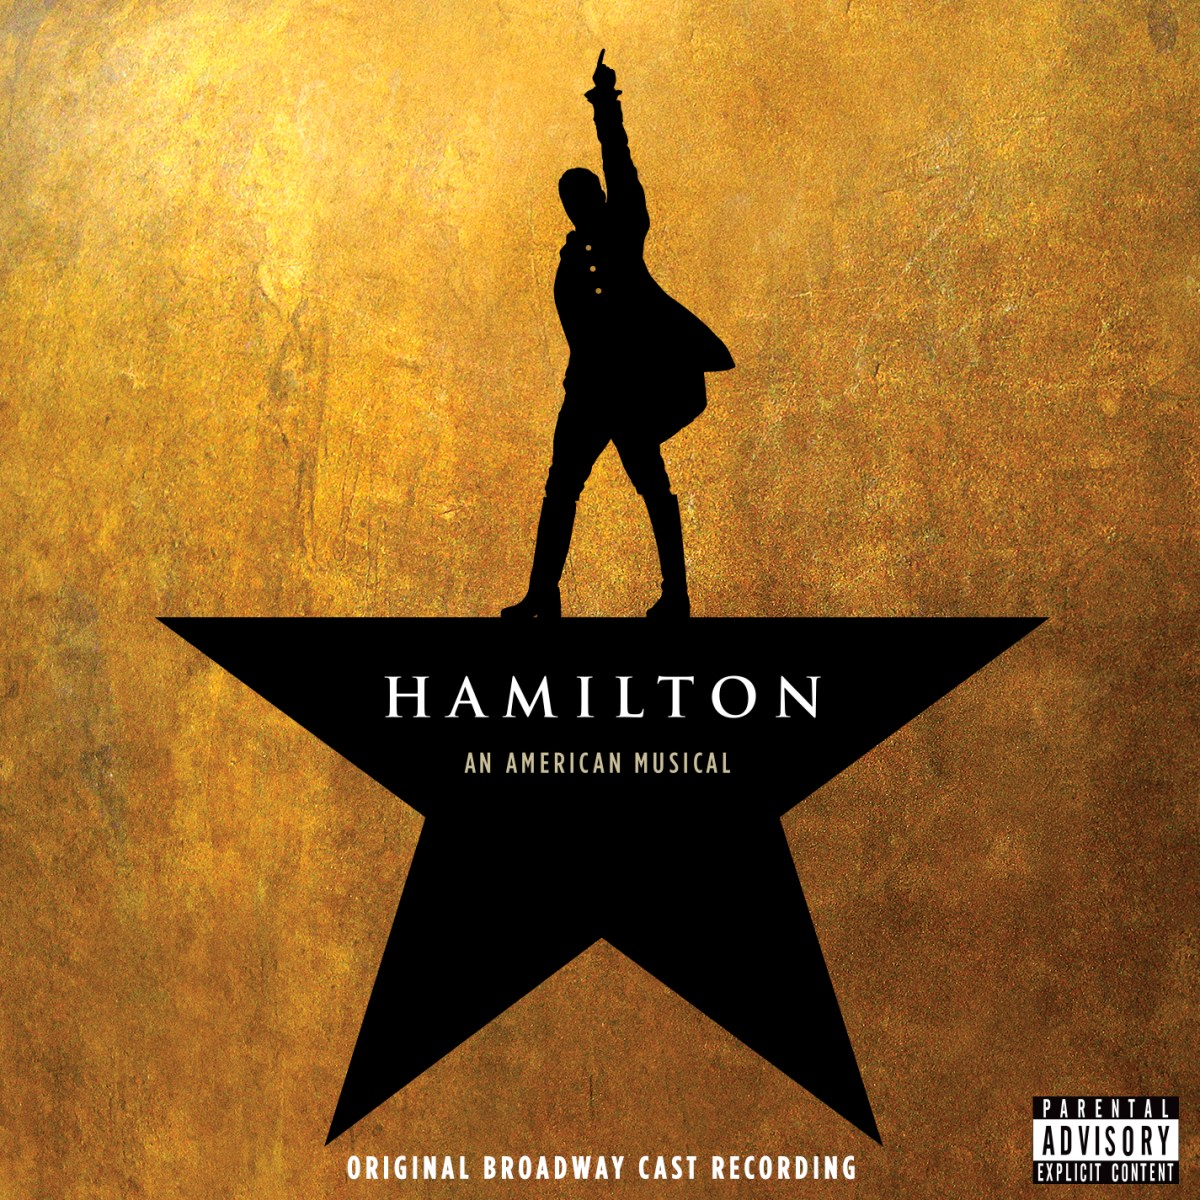 Hamilton: Musical Theater, Public History's New Frontier?